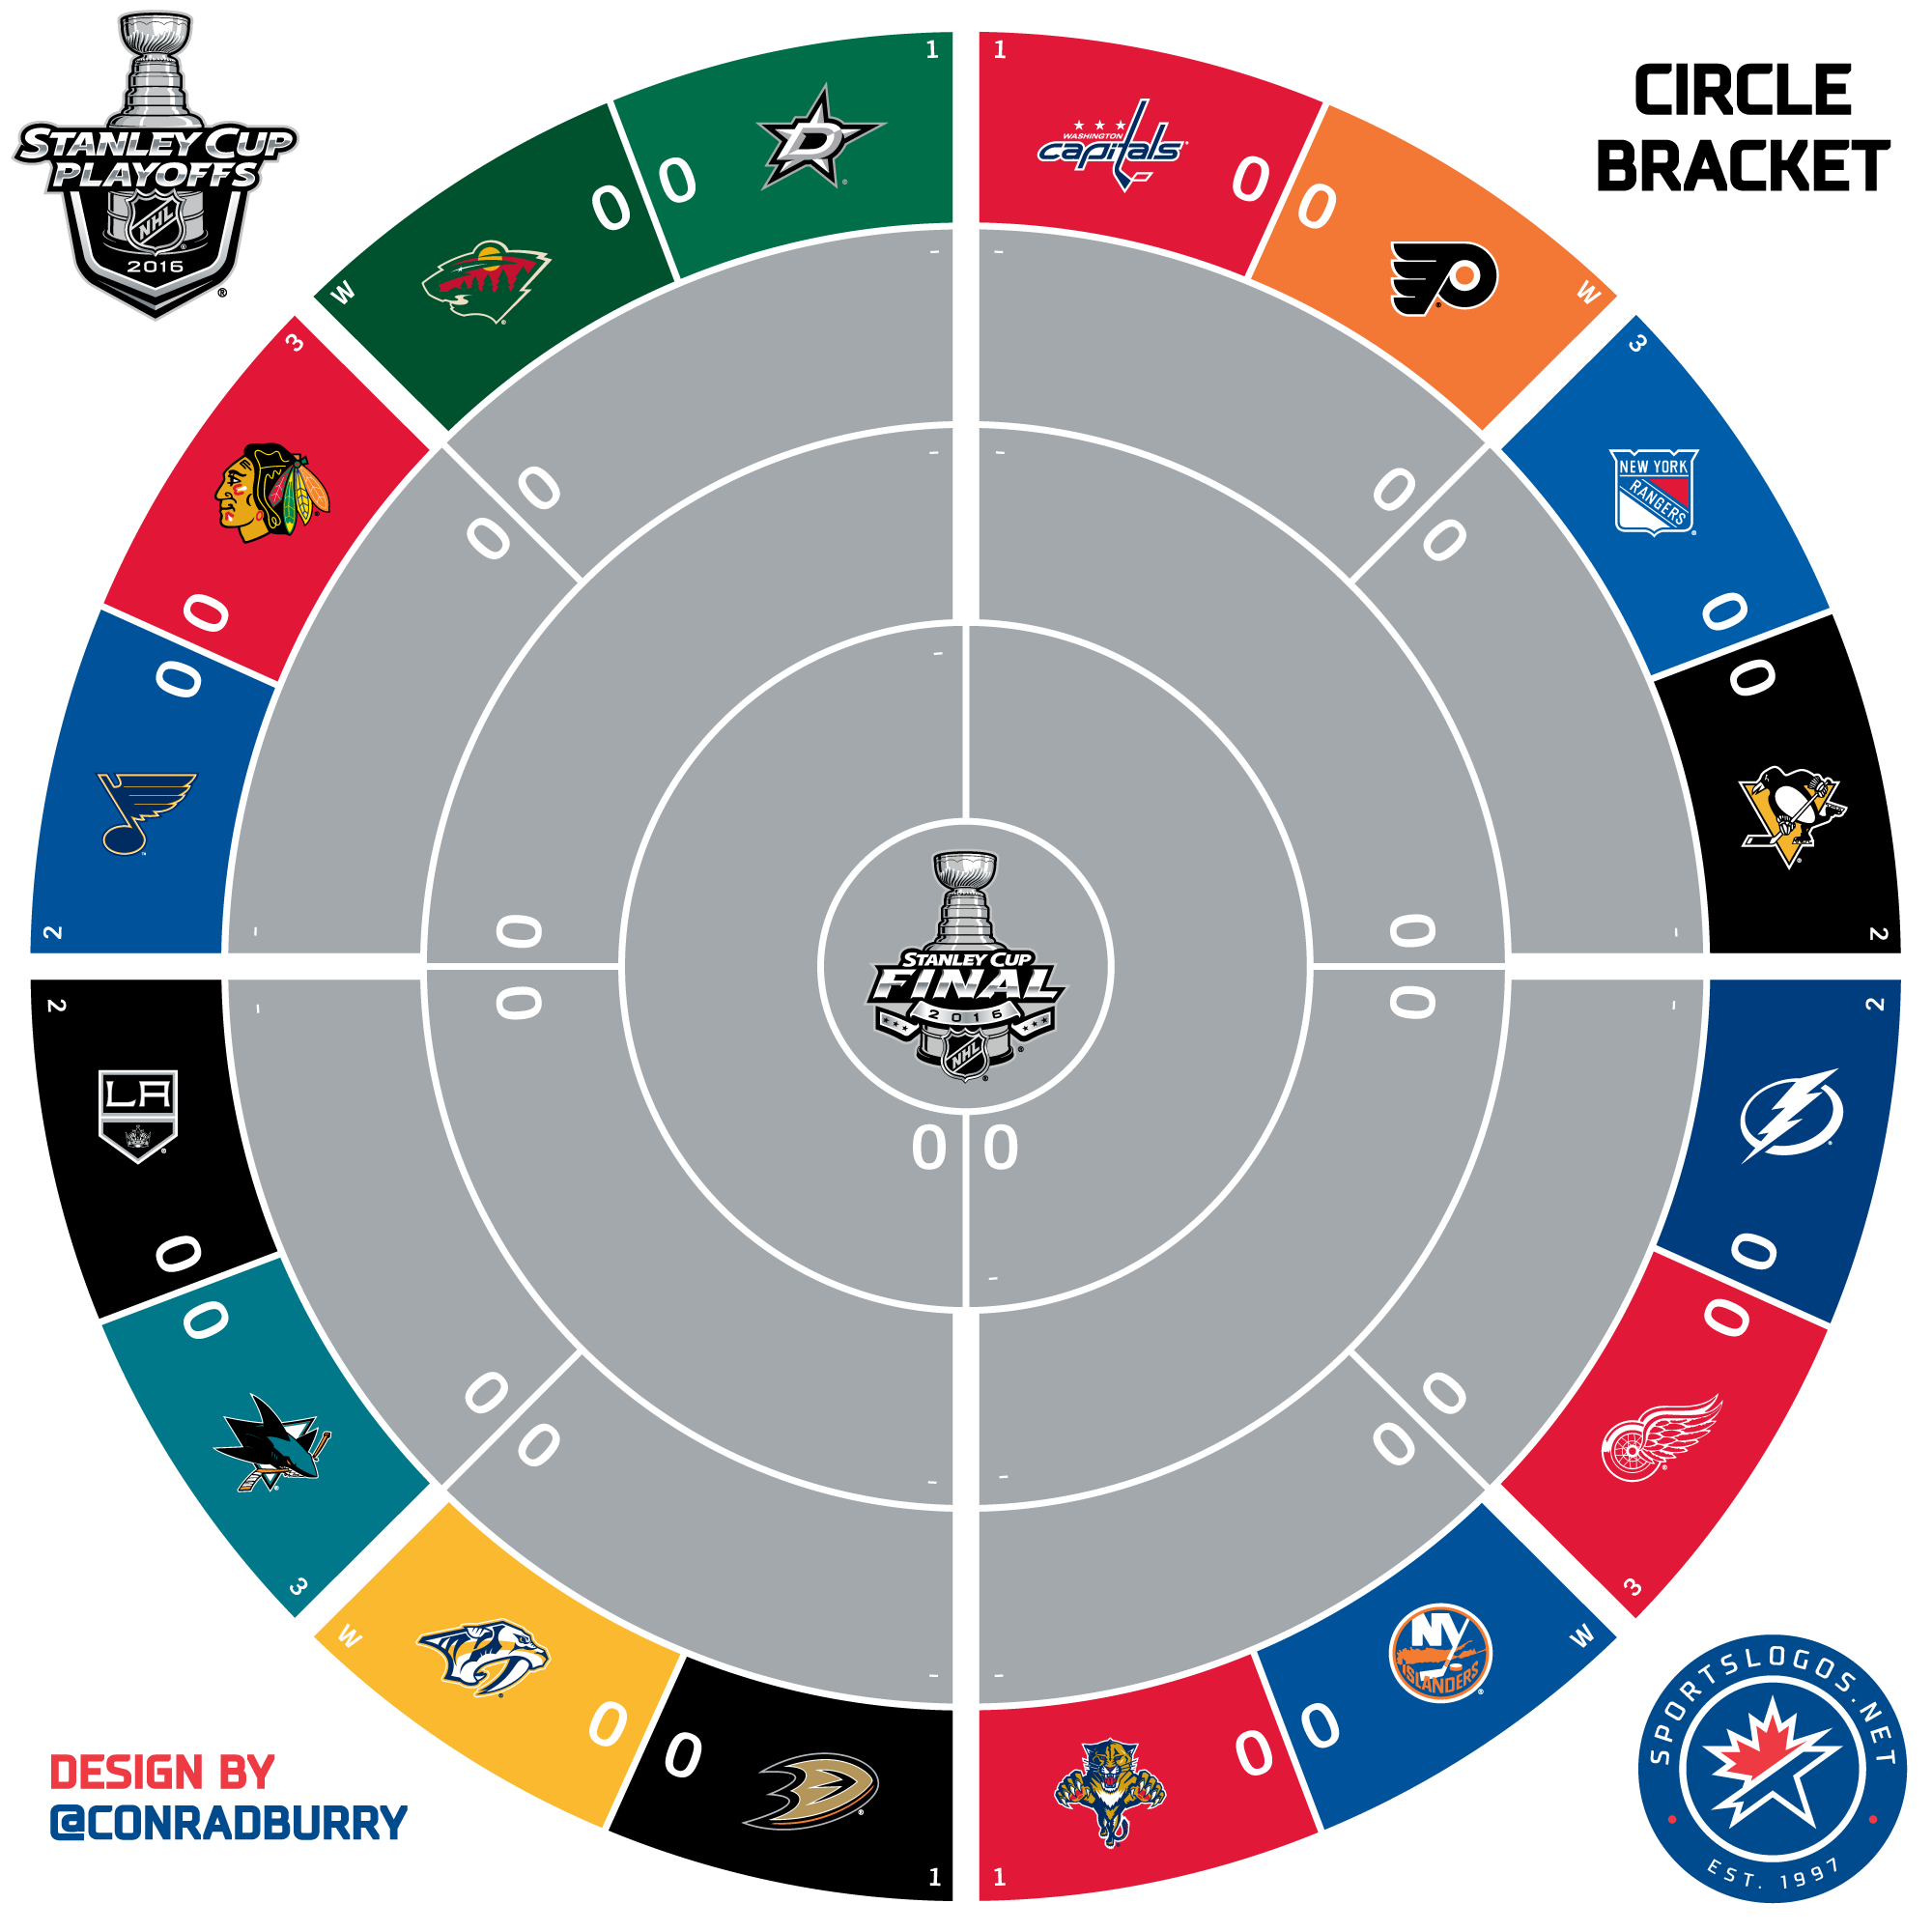 2016 NHL Playoffs Printable Circle Bracket